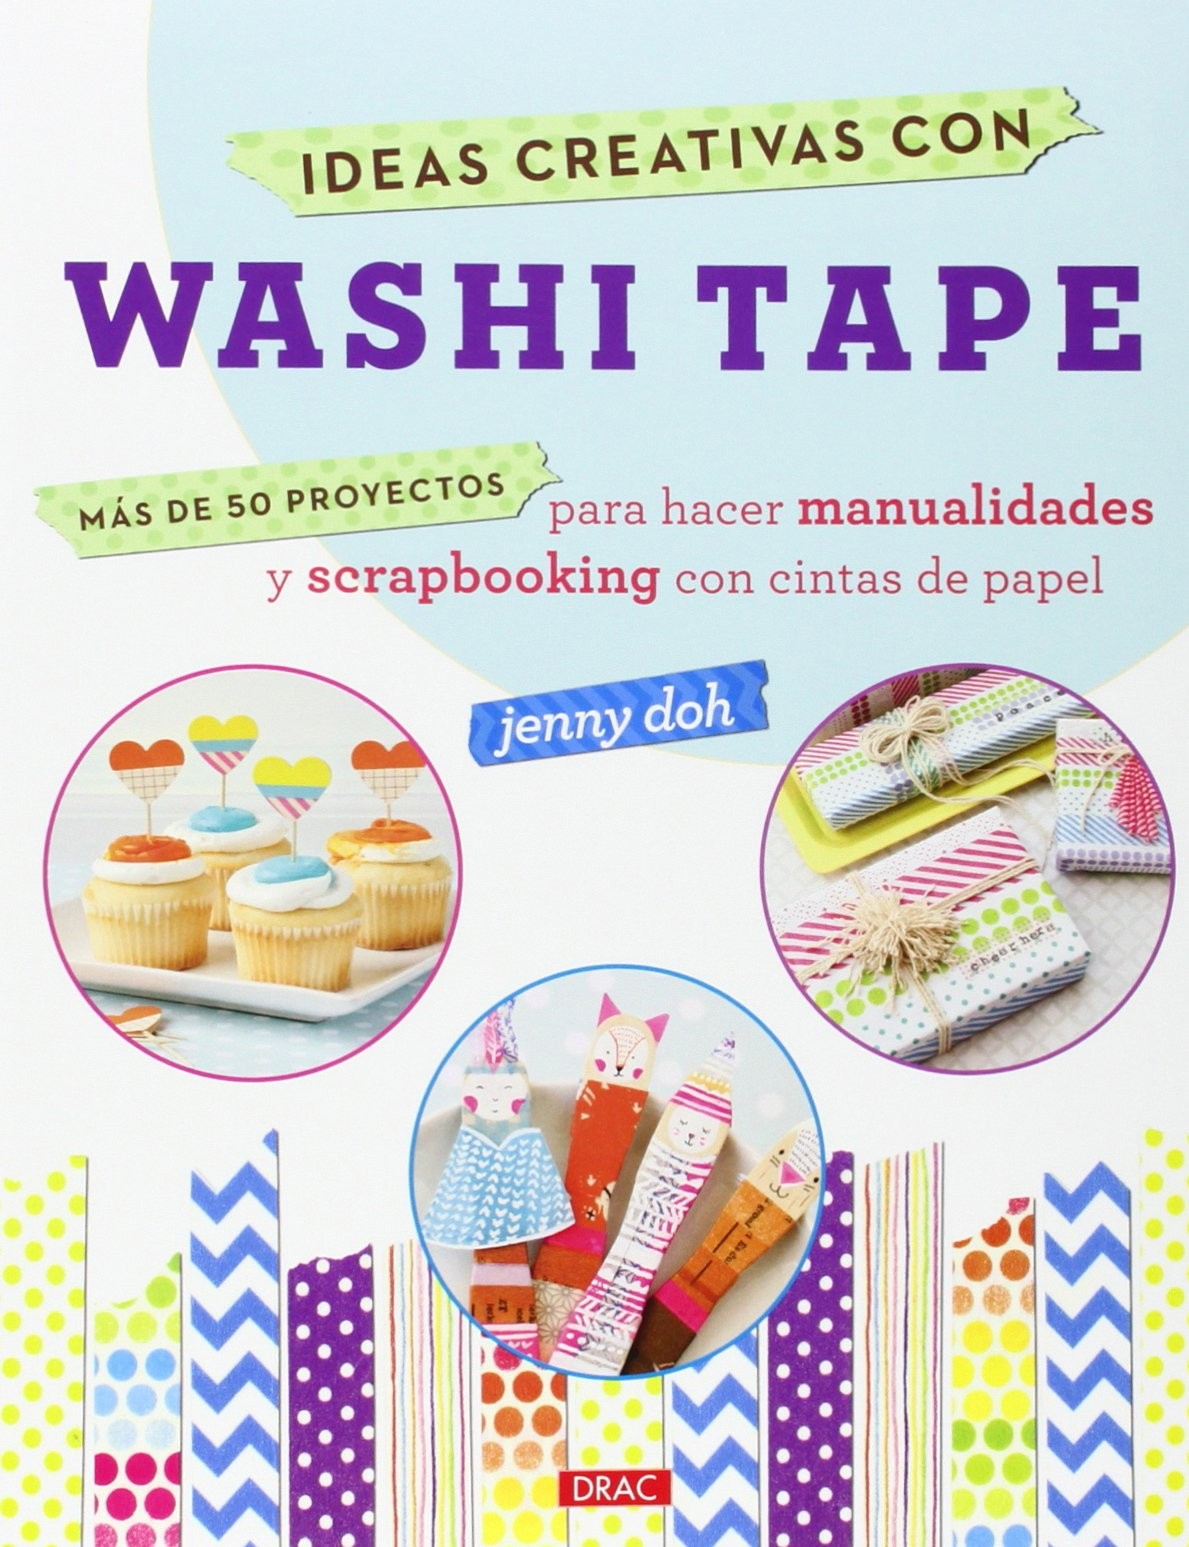 Ideas Para Decorar Con Washi Tape Libro Ideas Creativas Con Washi Tape De Drac Tienda